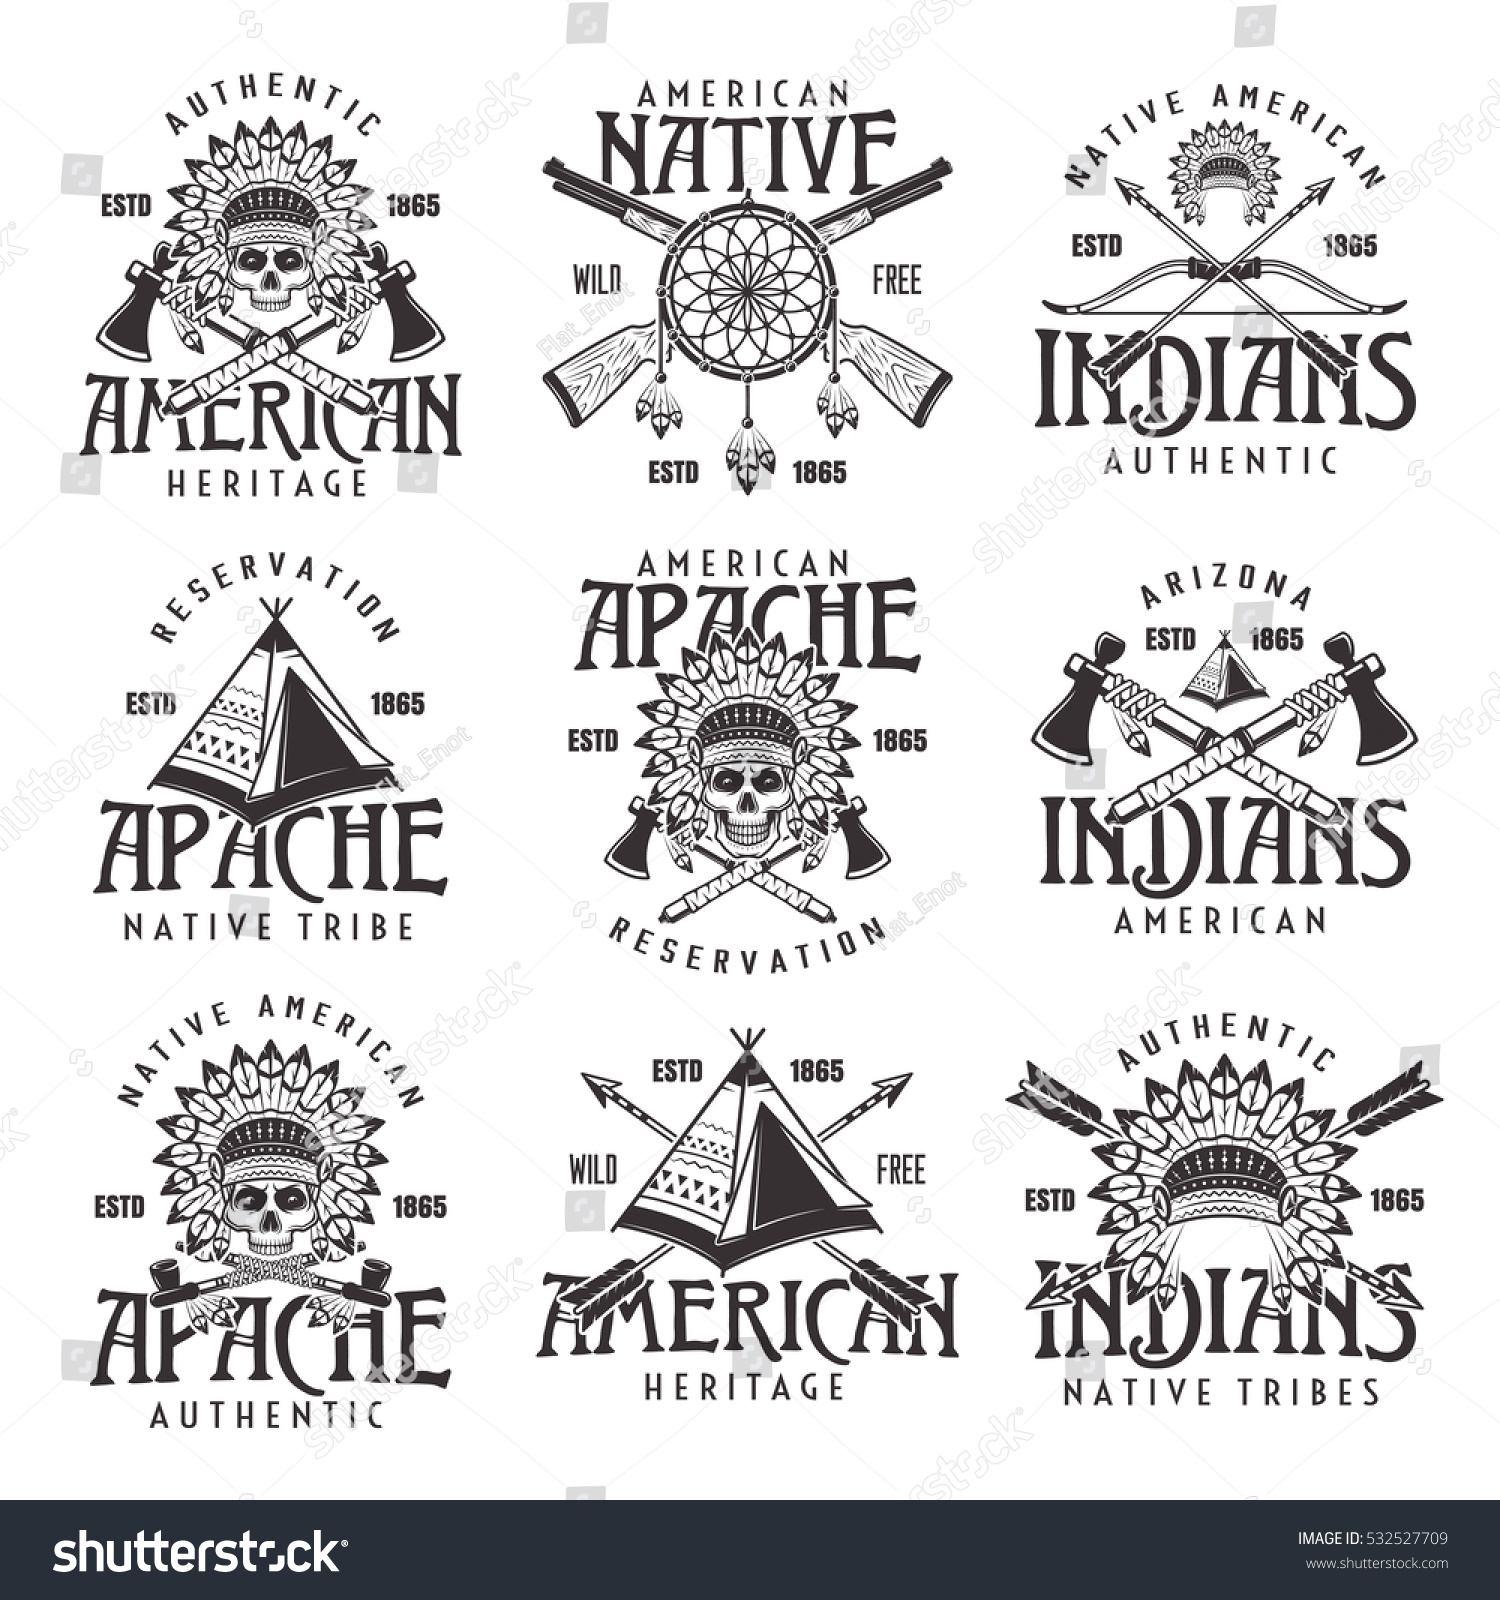 Similiar Apache Tribal Symbols Meanings Keywords